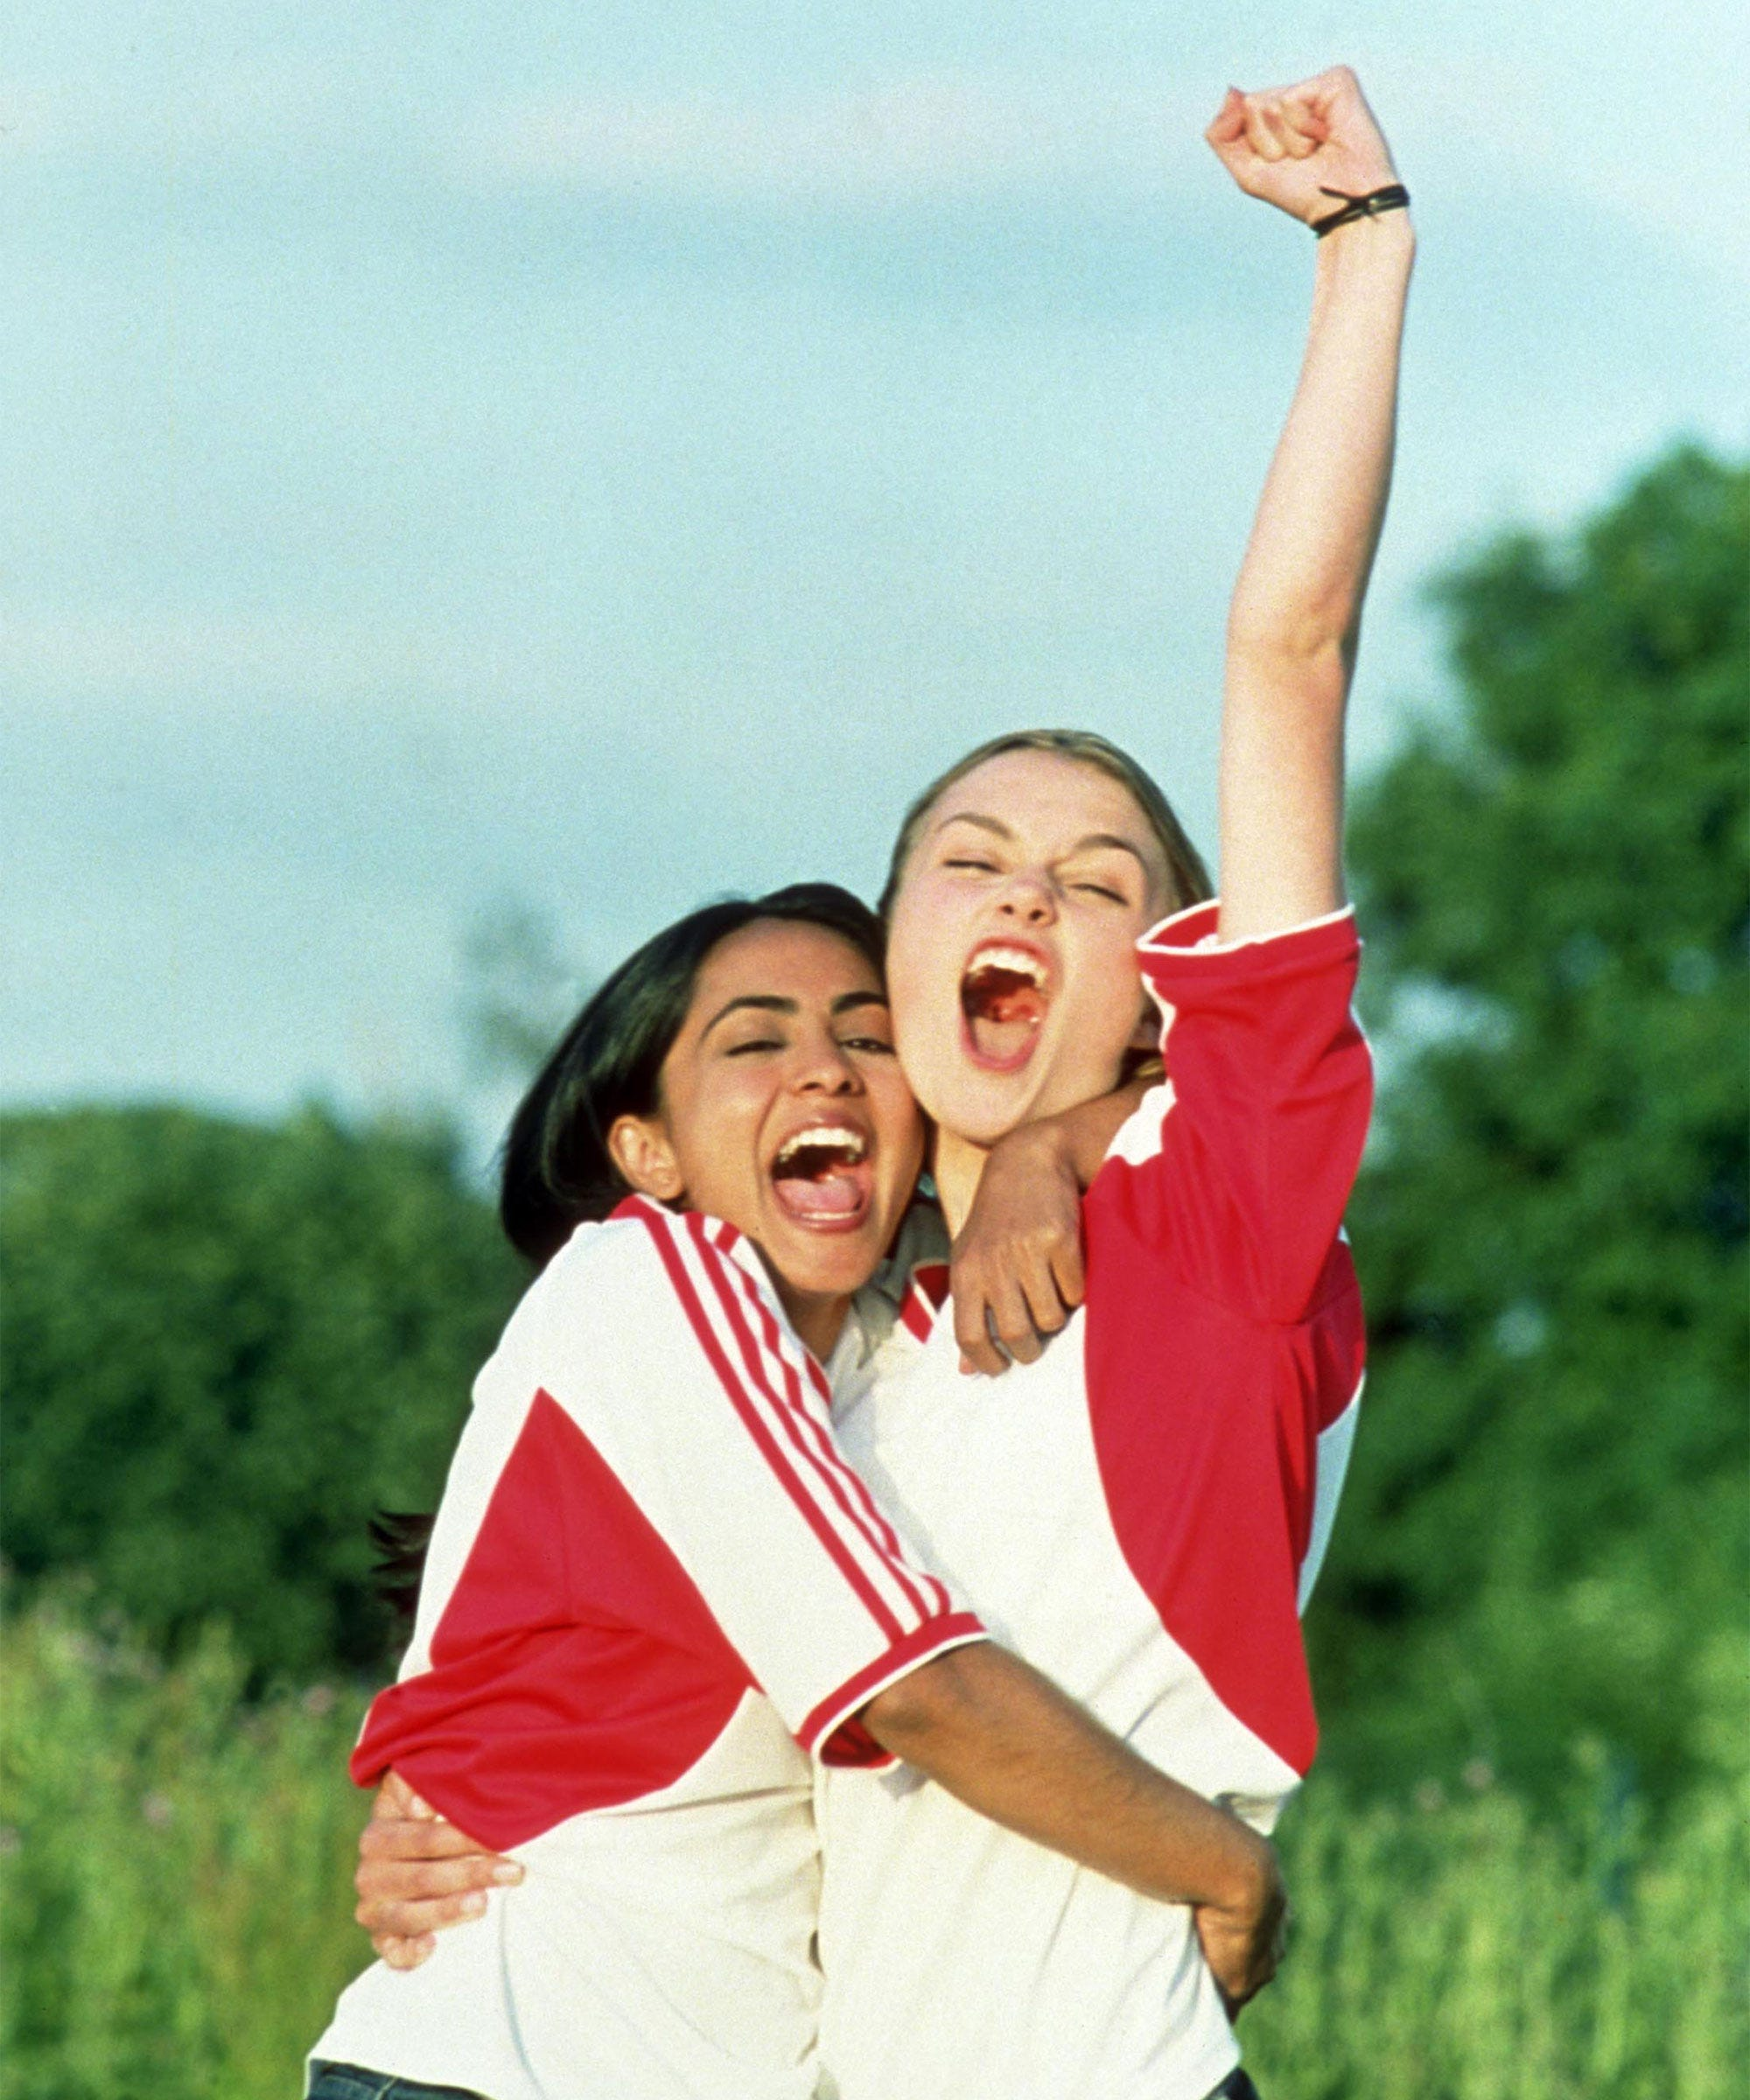 Now's The Time To Re-Watch Bend It Like Beckham